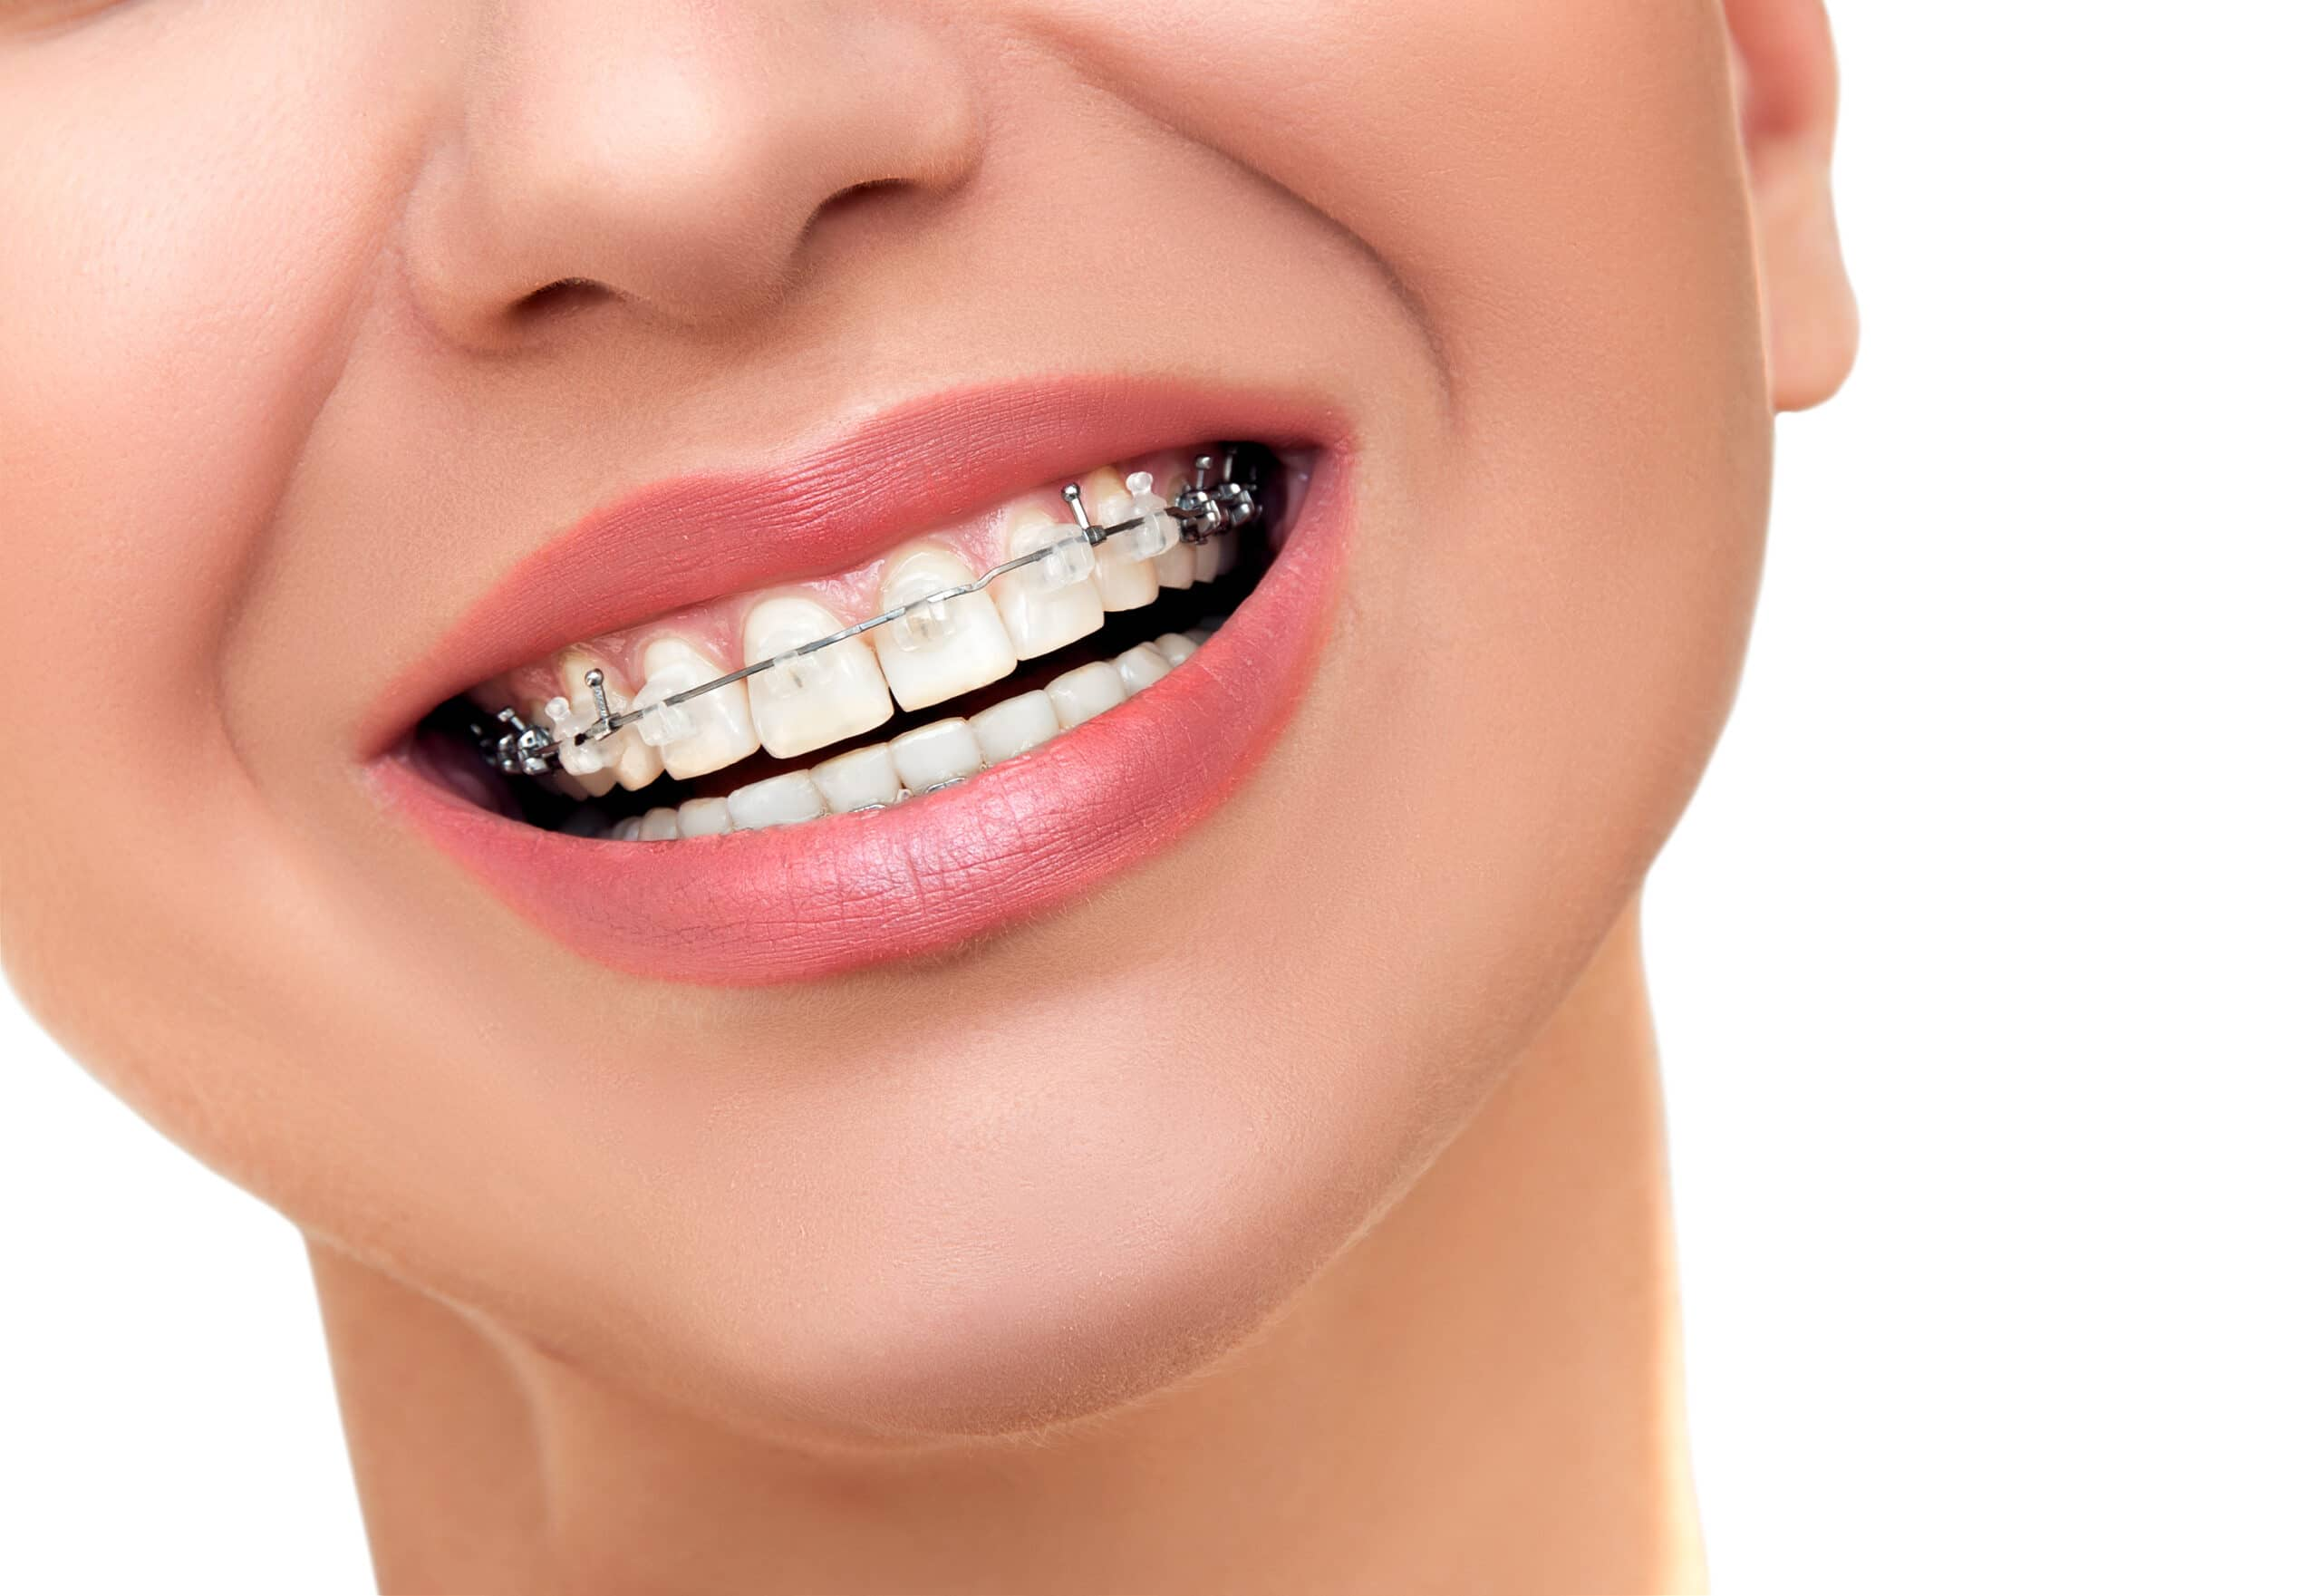 What is included in my complimentary orthodontic examination?